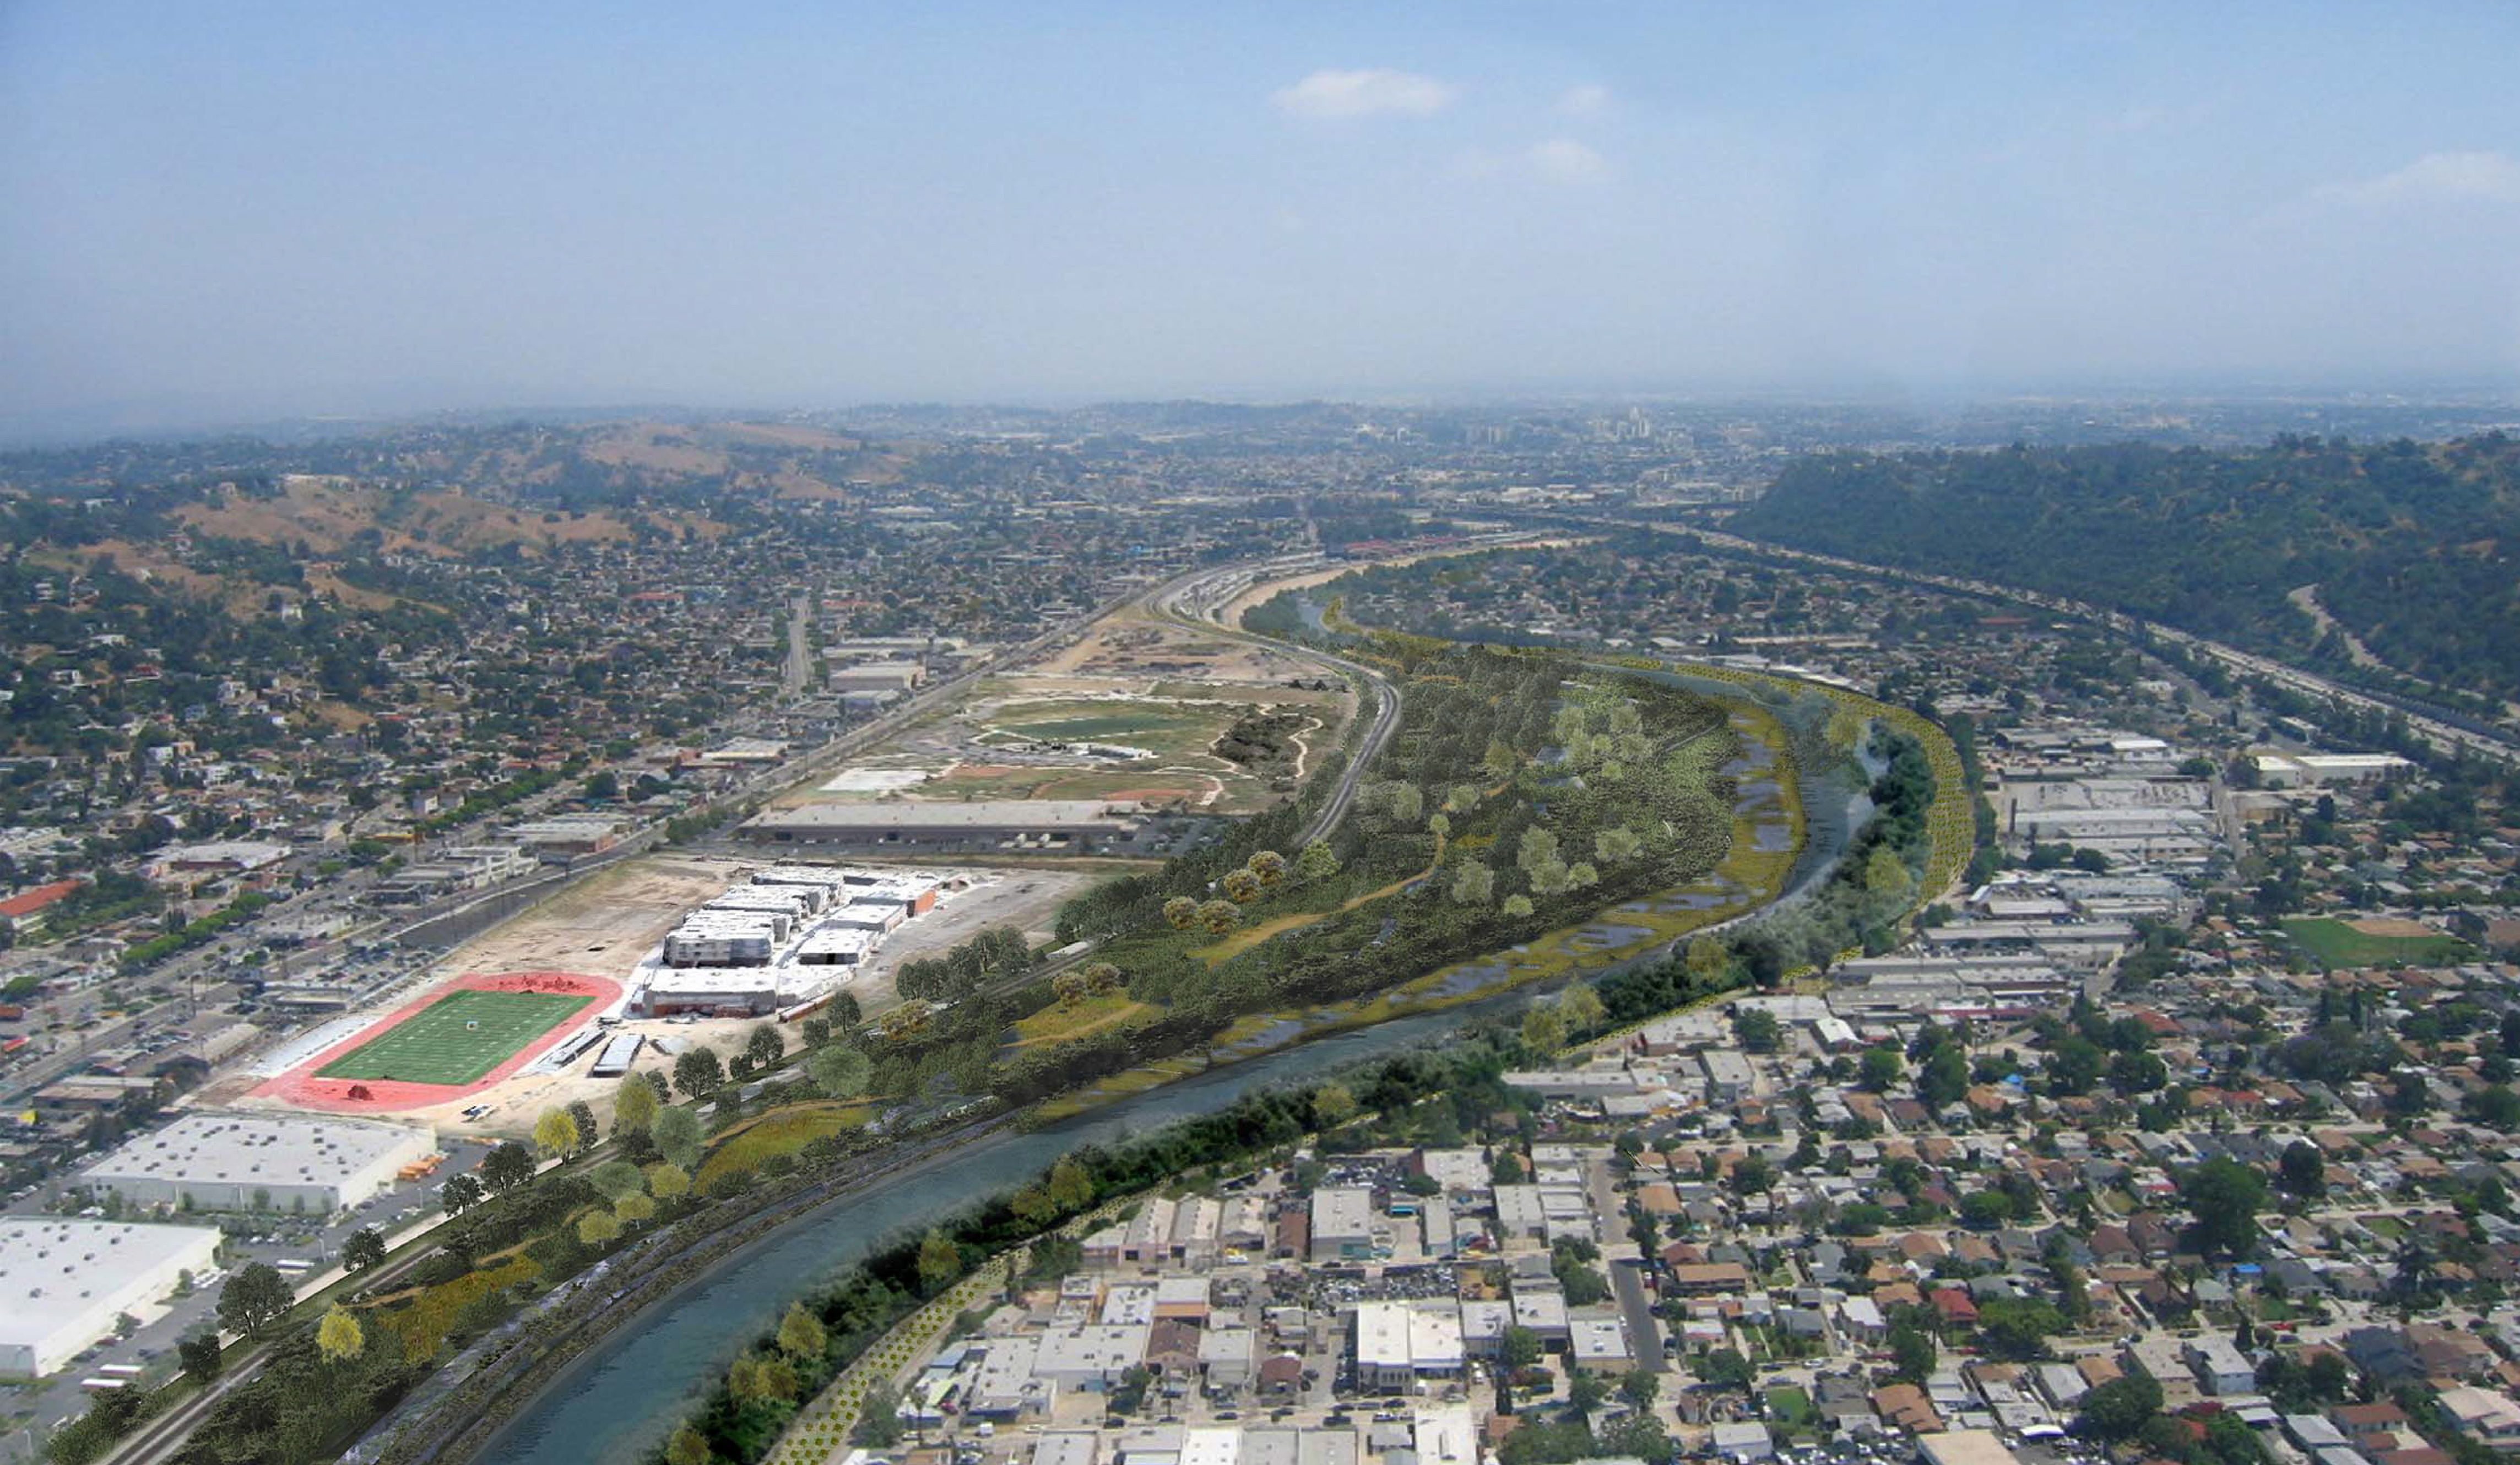 Taylor Yard: Planning is ramping up to turn 41 acres on the LA River into a big park